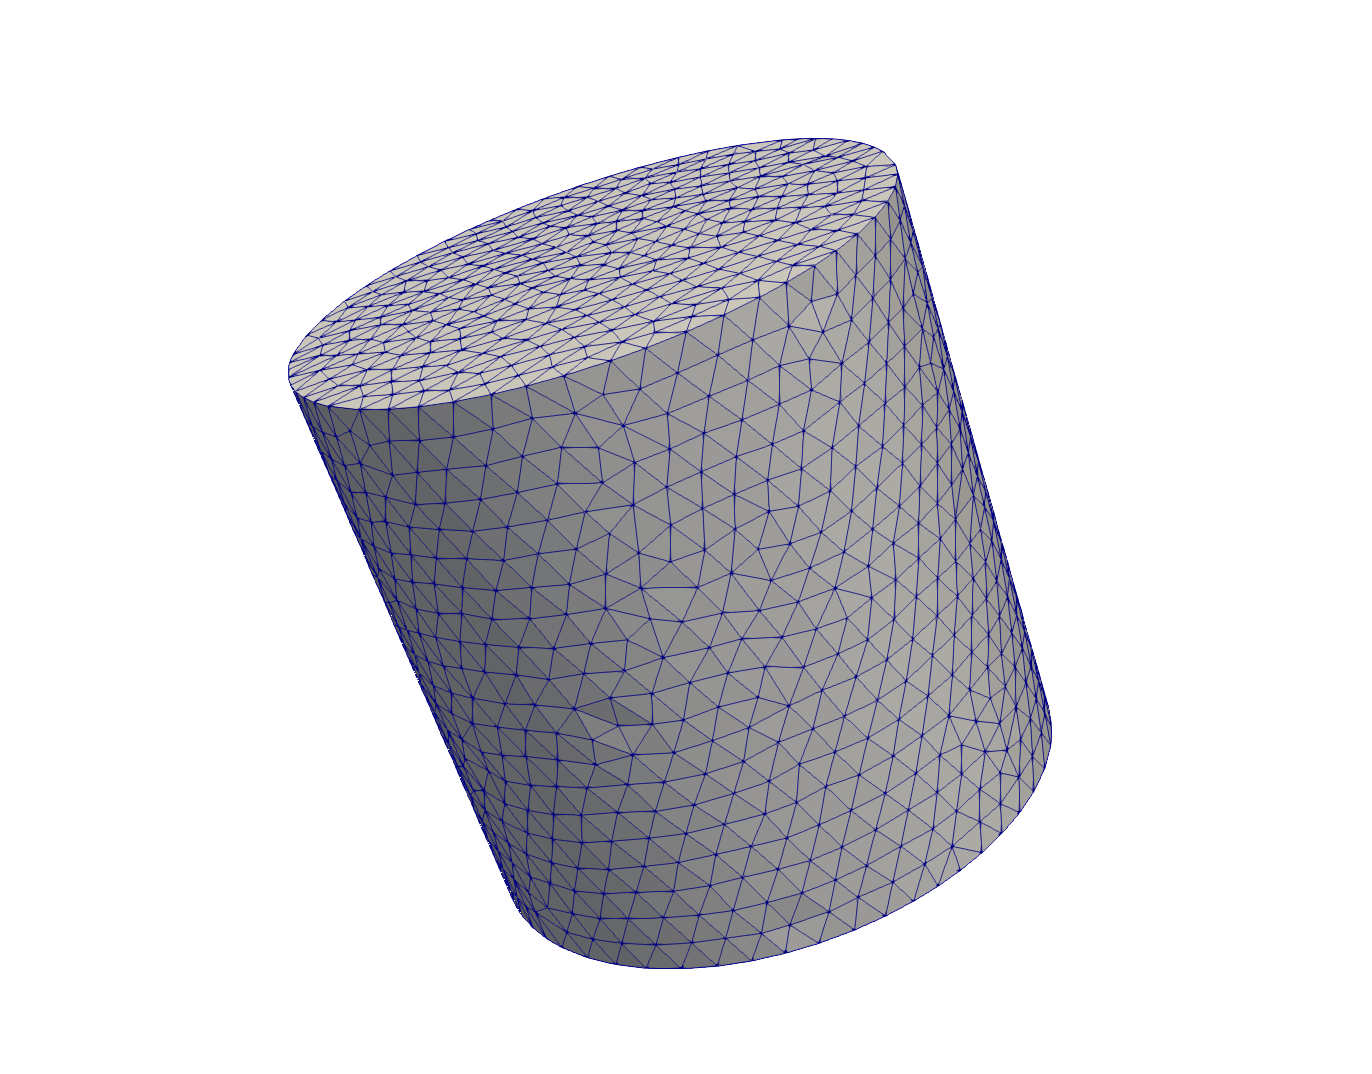 Above shows the mesh in ParaView that results from running the code below.